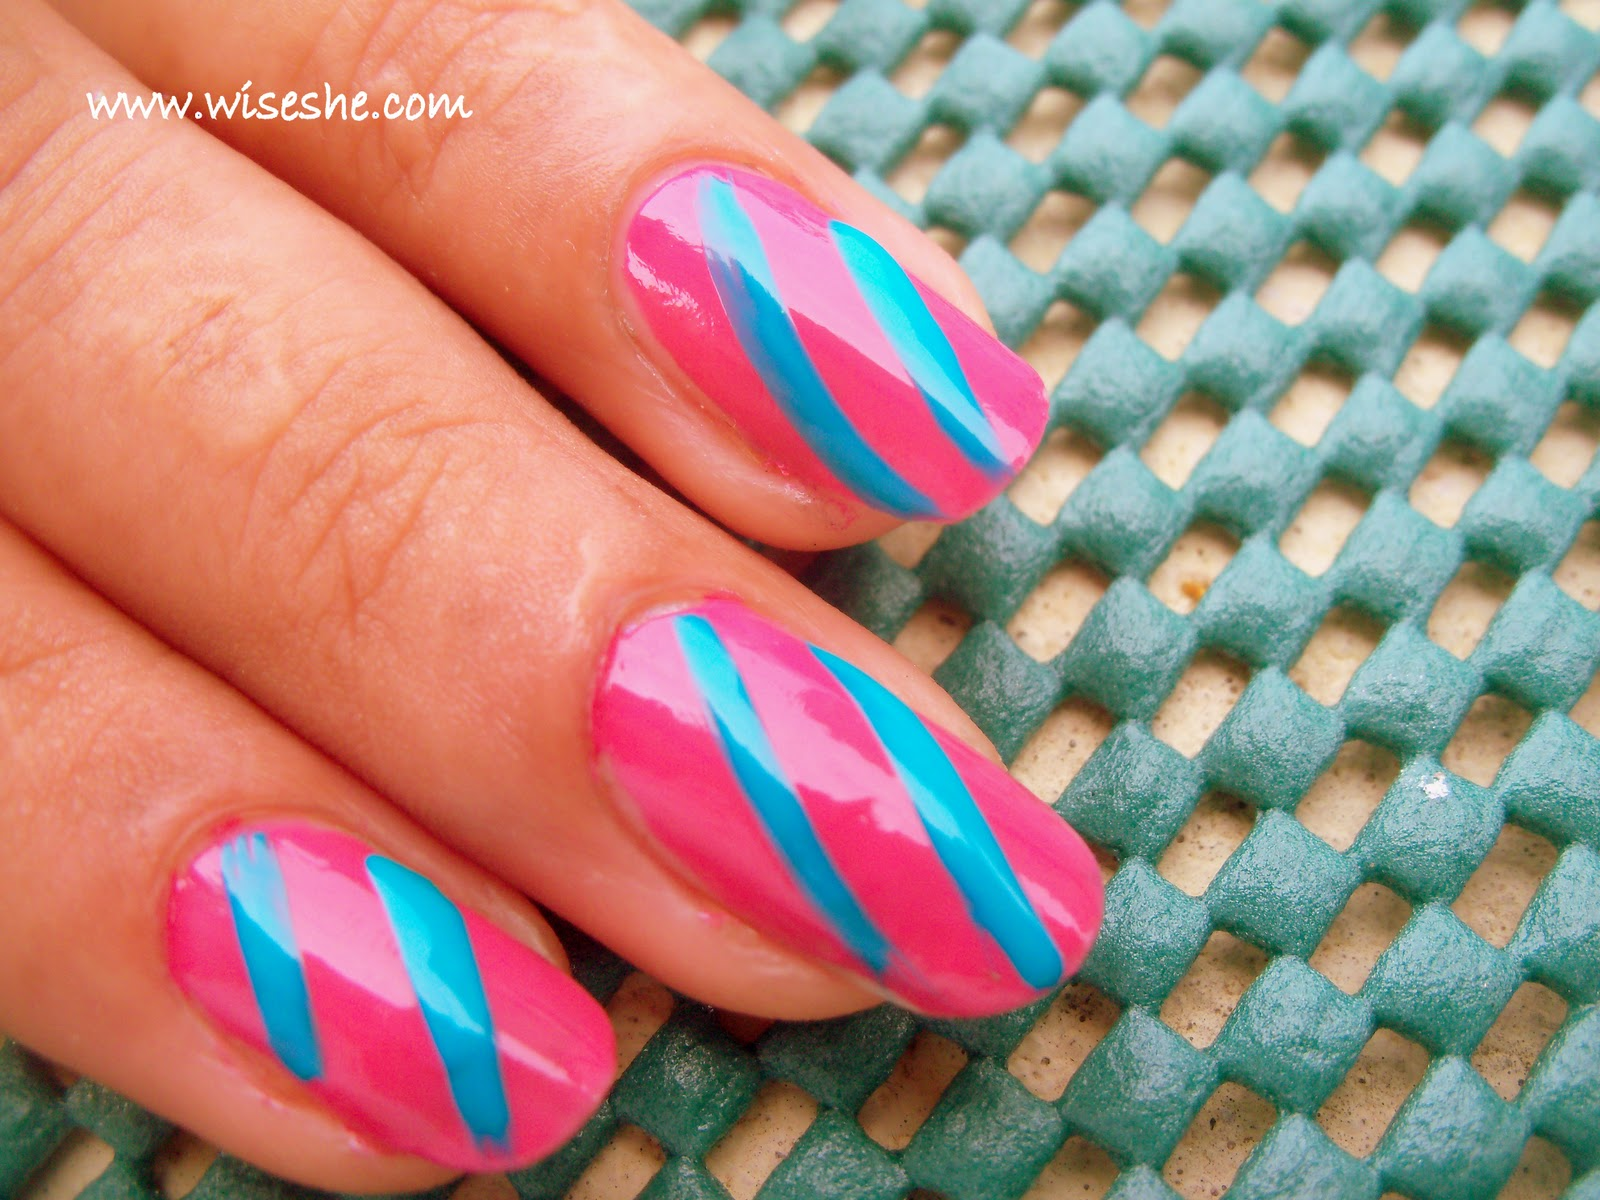 Nail Design Ideas Blue And Pink The Best Inspiration For Design